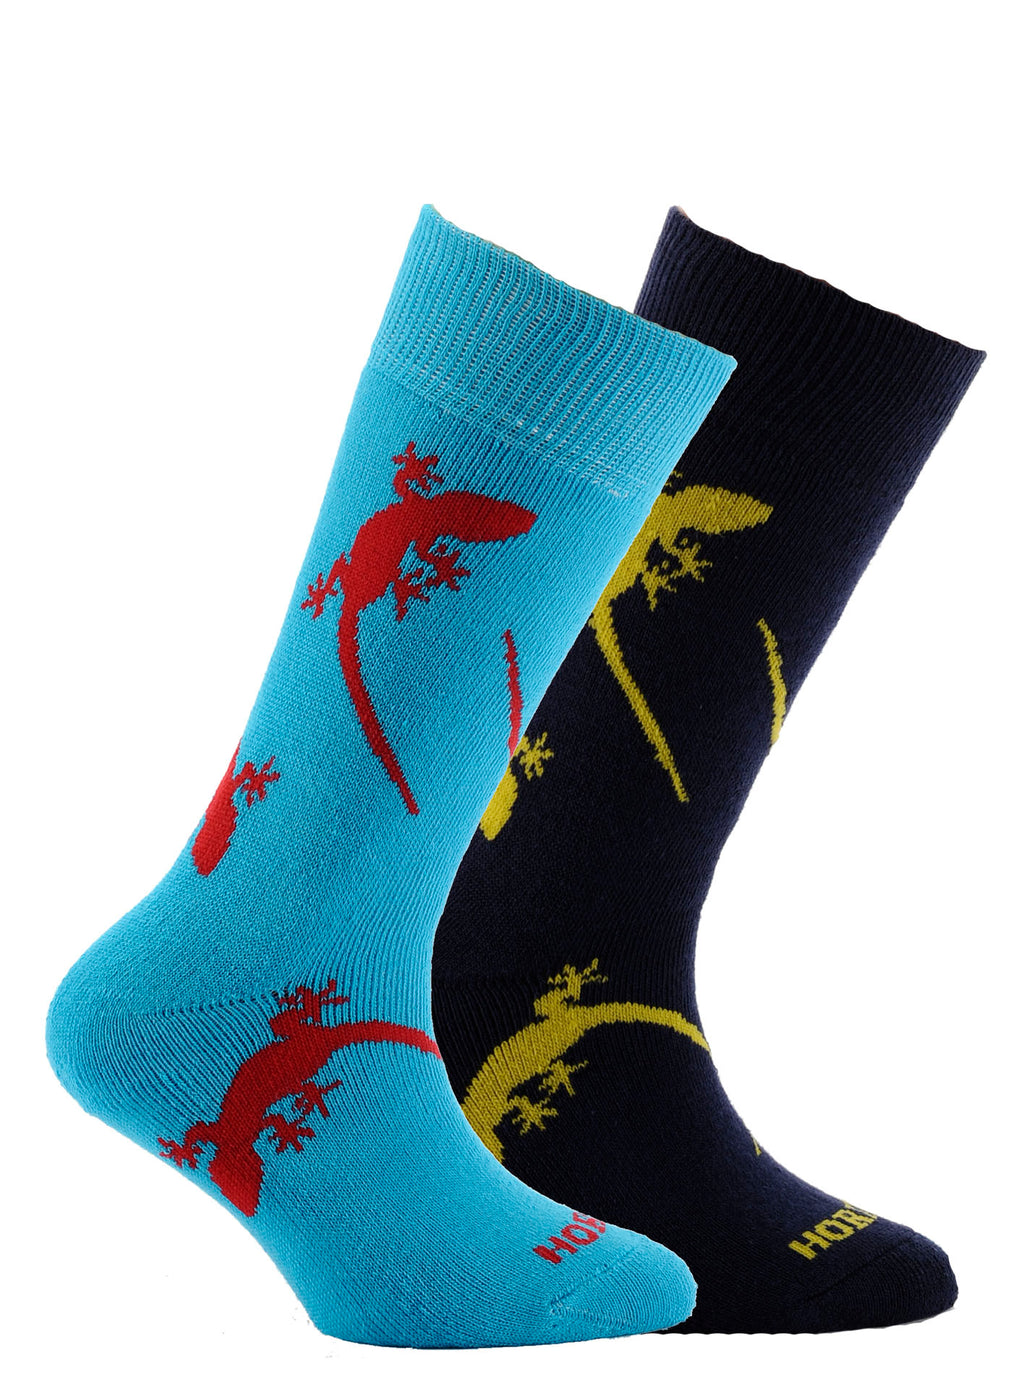 Horizon Kid's 2pk Socks